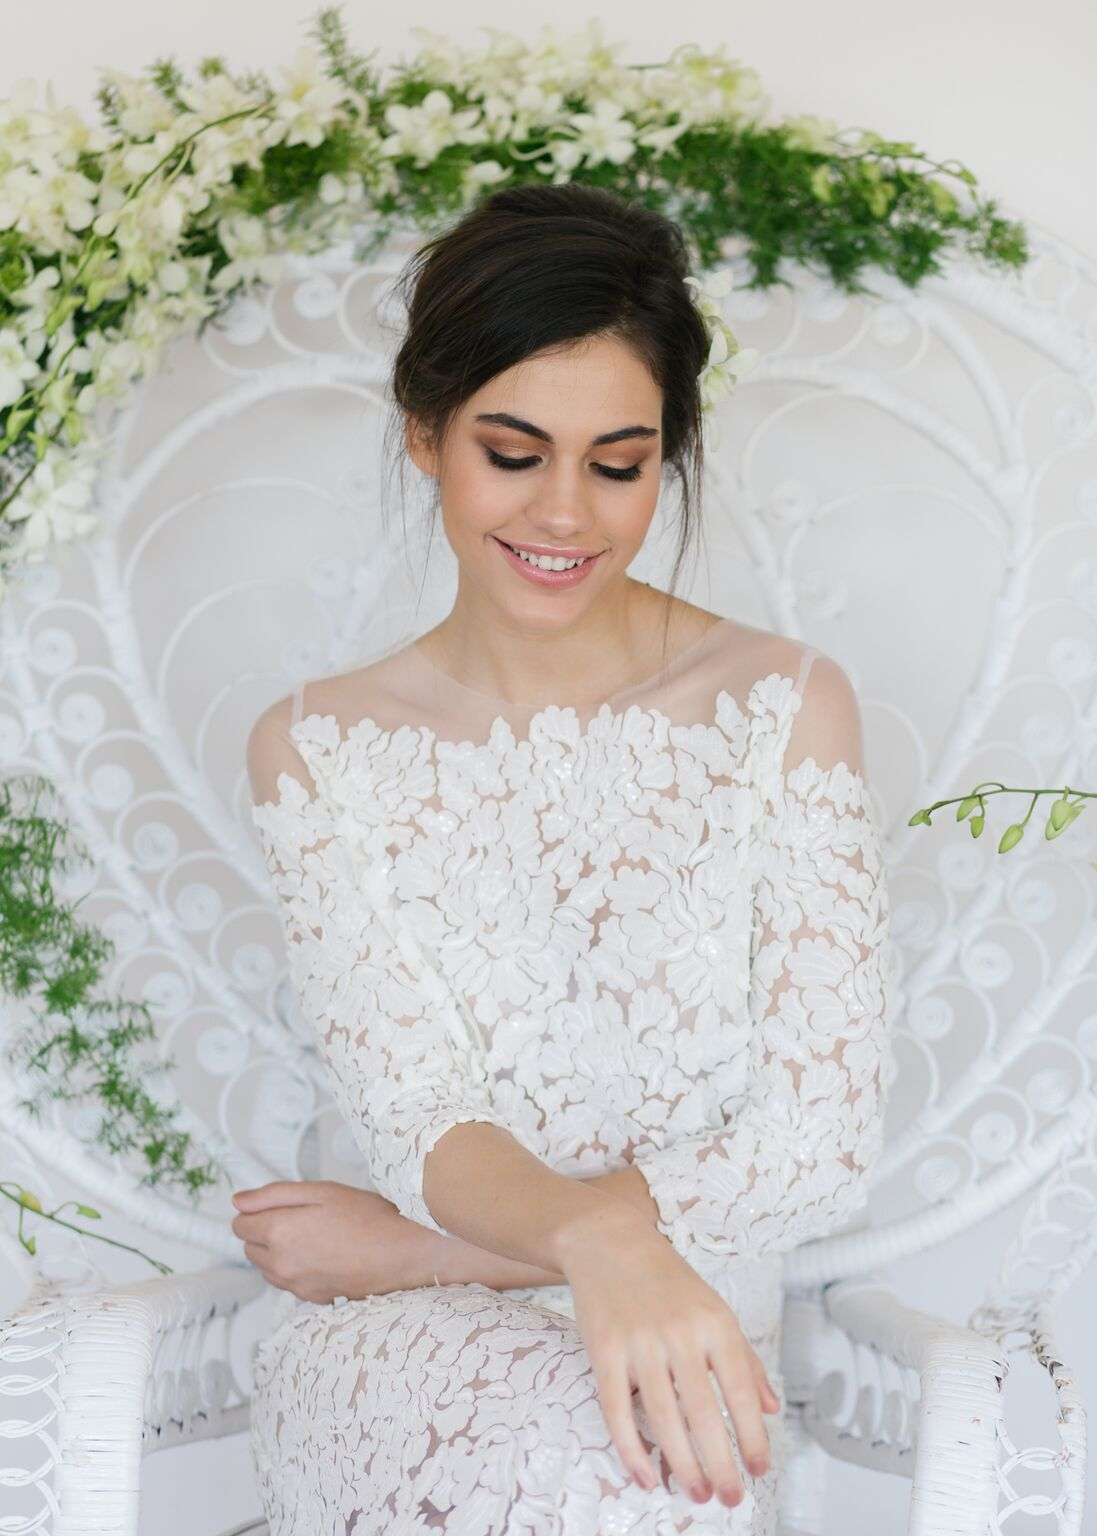 White-wedding-flowers-by-julia-rose-babalou-kingscliff-peacock-chair-lace-.jpg